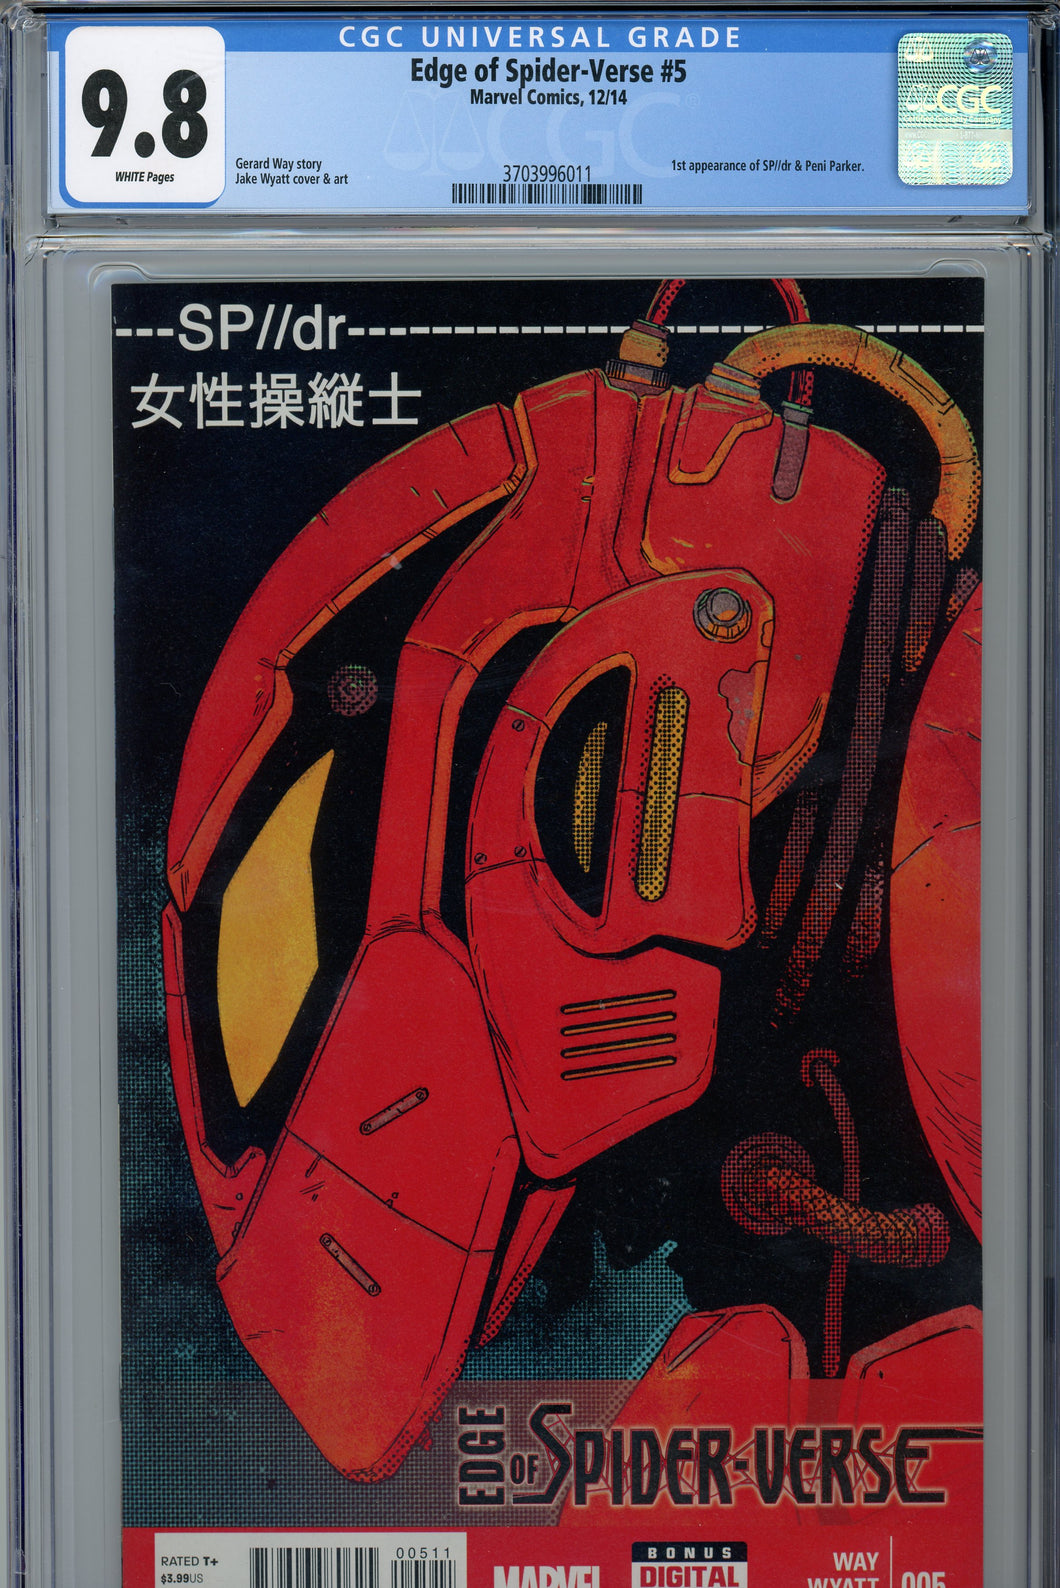 Edge of the Spider-Verse #5 CGC 9.8 1st Appearance of Peni Parker